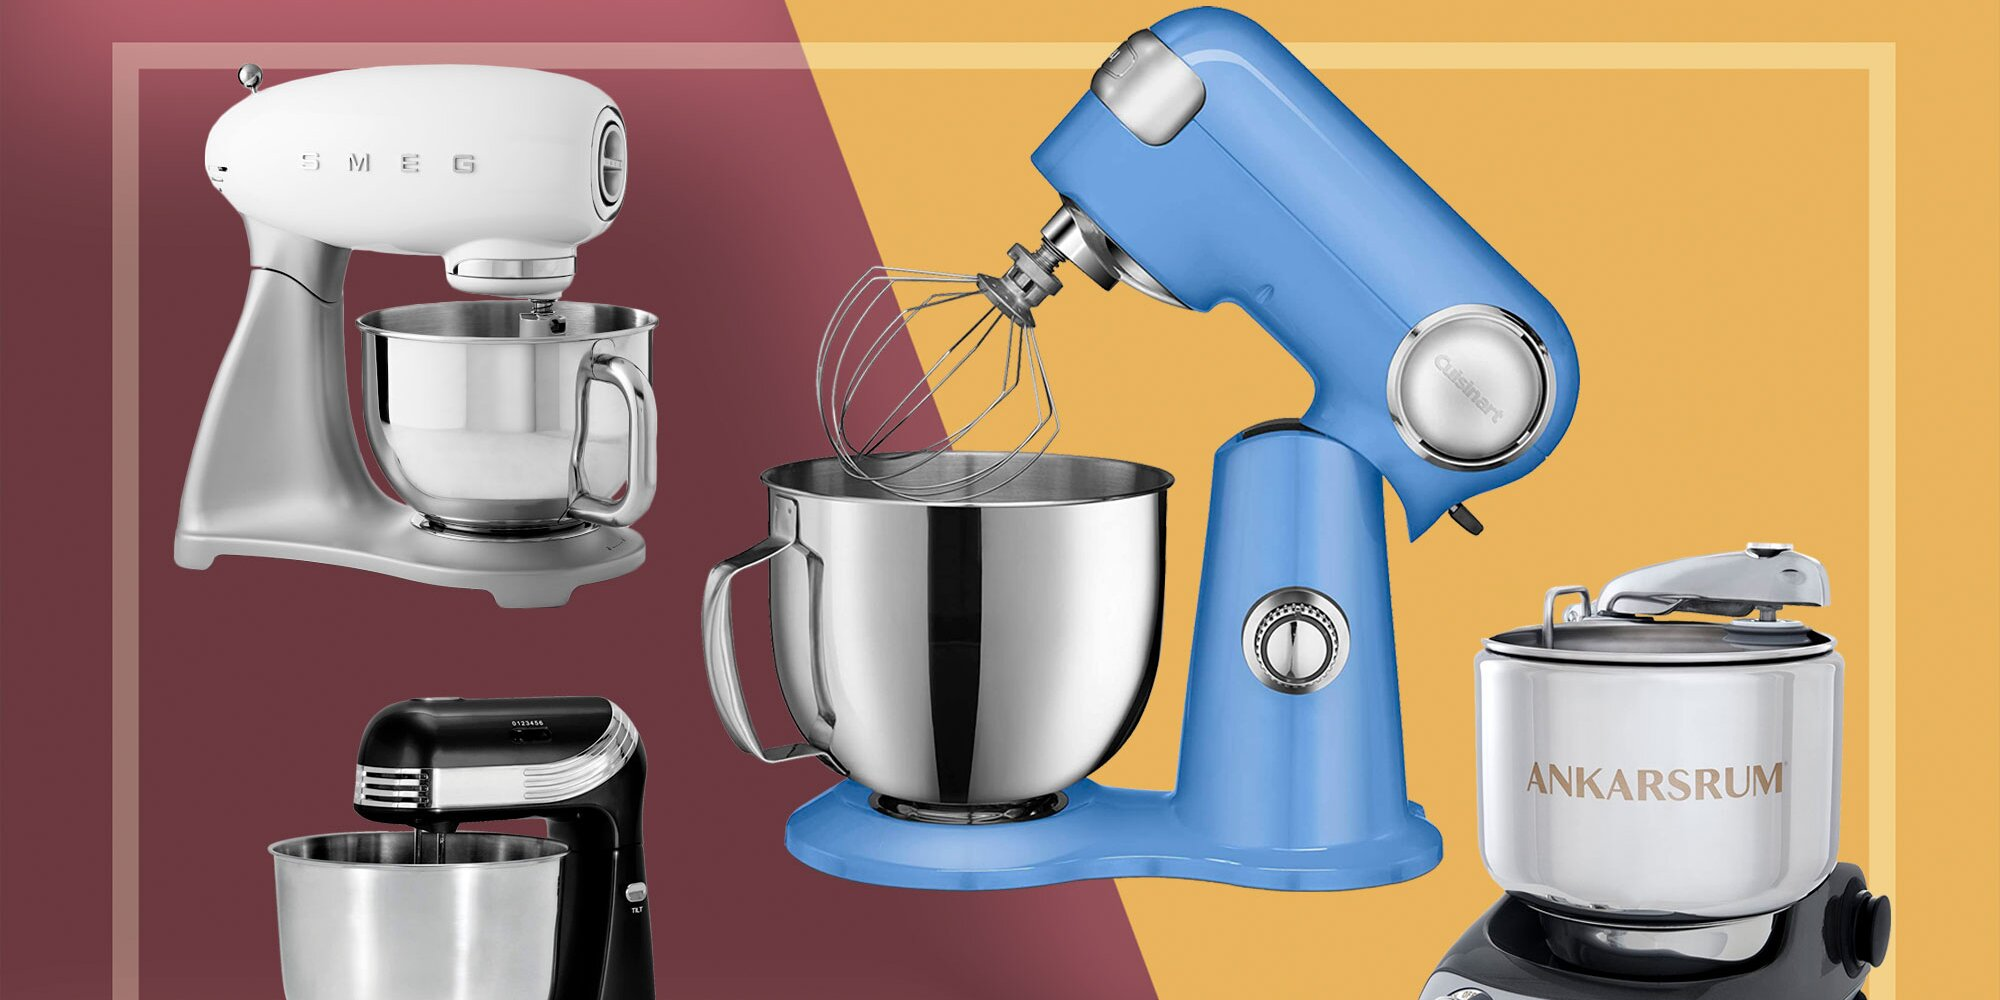 The 10 Best Stand Mixers for Effortless Mixing, Kneading, and Whipping